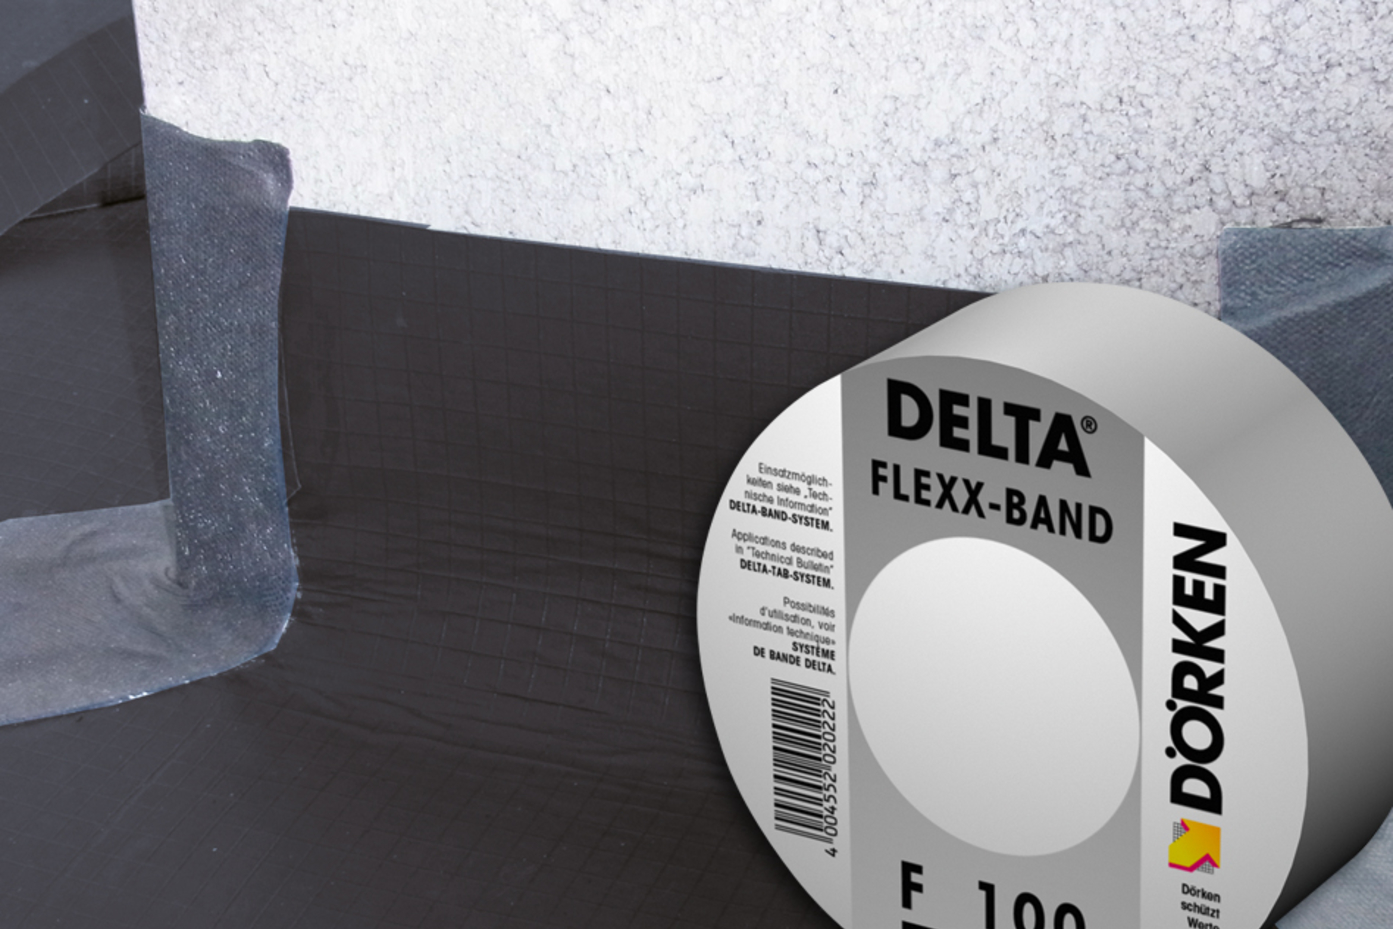 DELTA®-FLEXX BAND roof adhesive tape